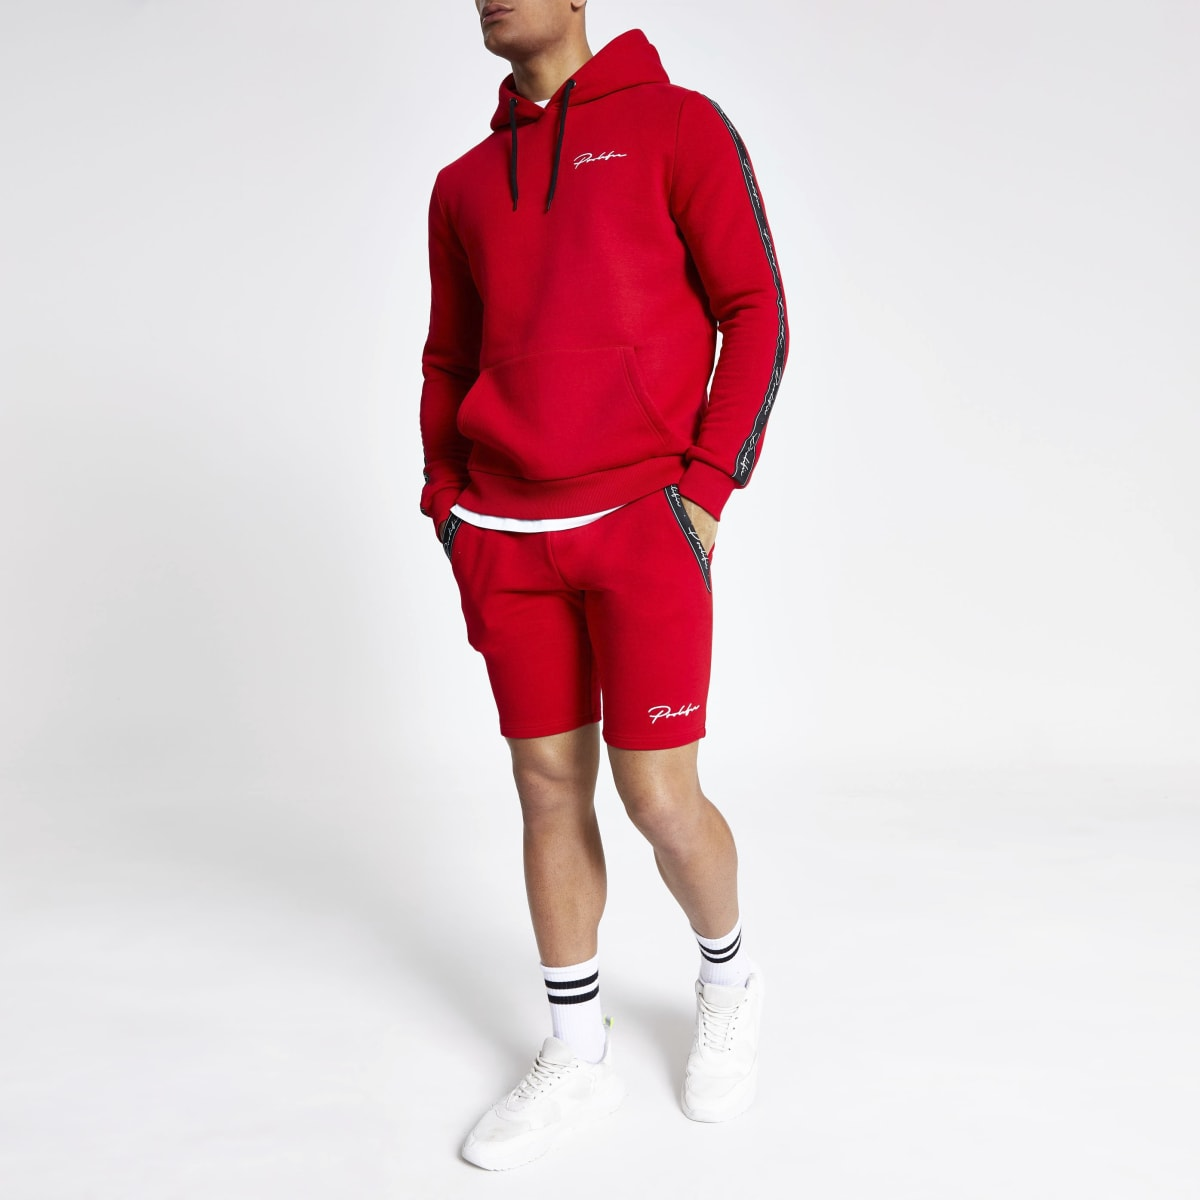 Red 'Prolific' muscle fit jersey shorts